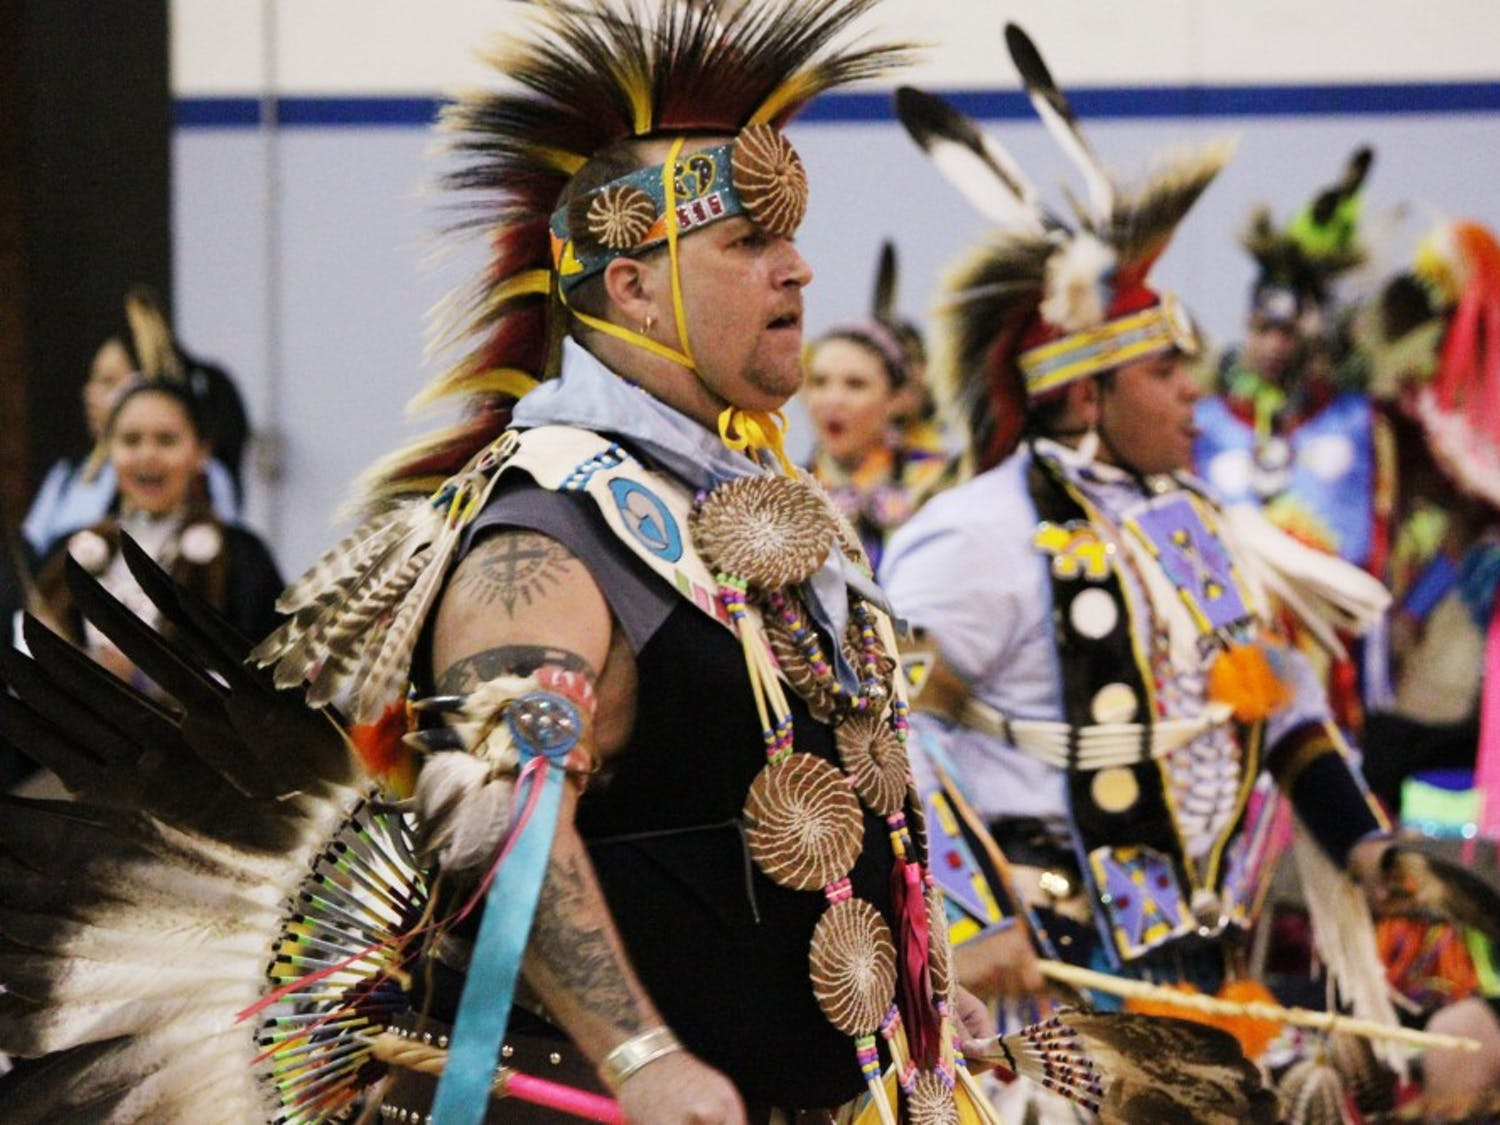 The Carolina Indian Circle Powwow was held this year in honor of Faith Hedgepeth.